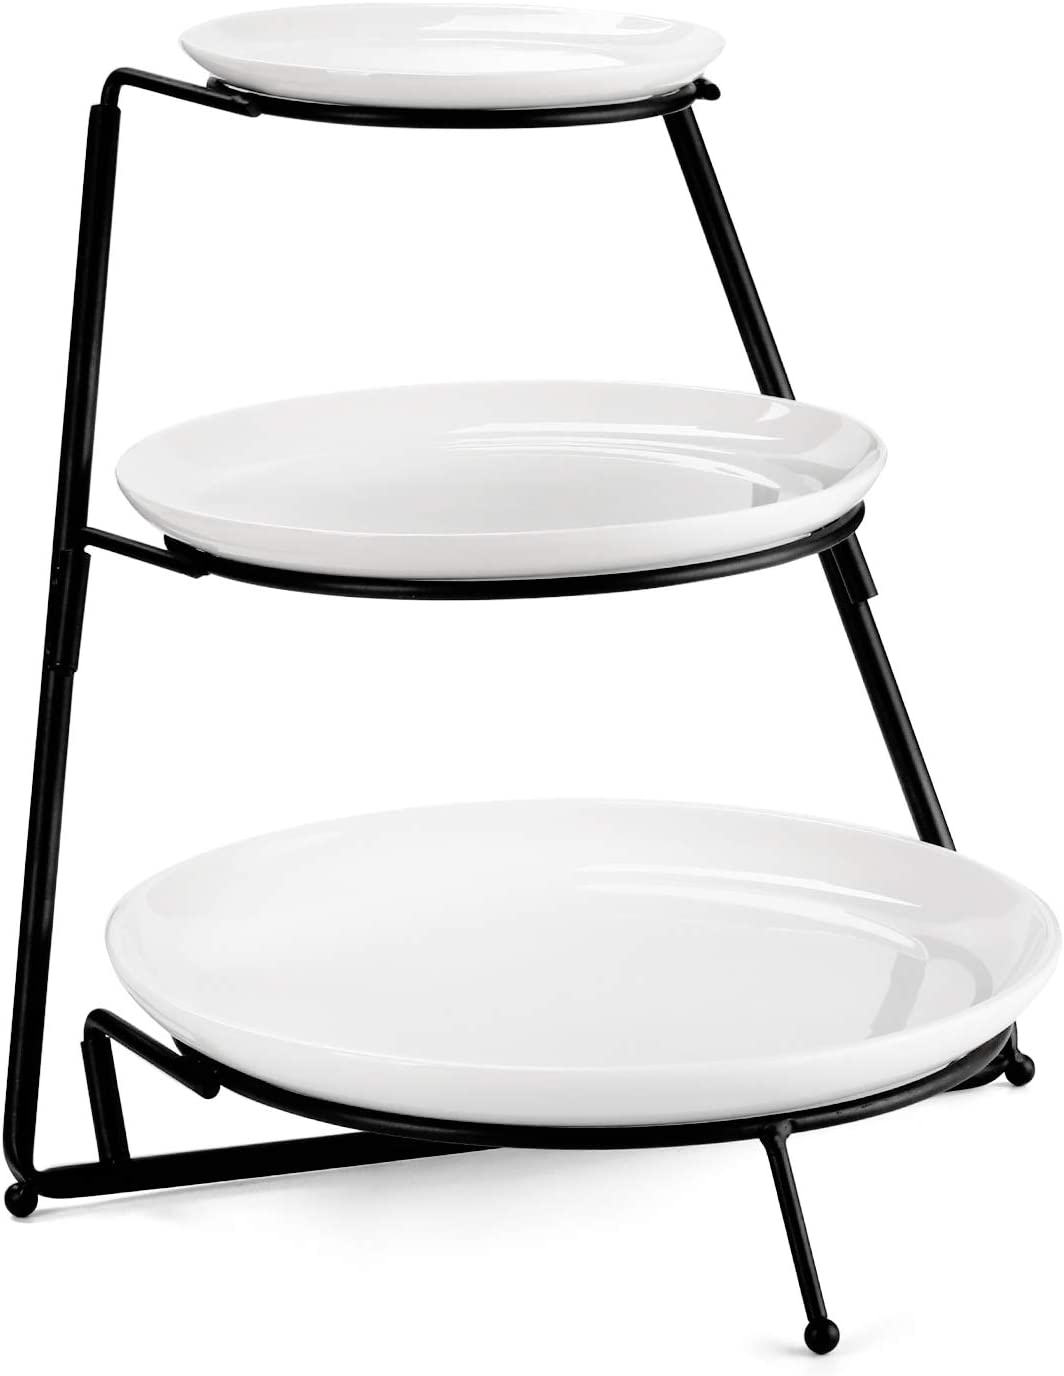 Sweese 738.101 3 Tiered Serving Stand - Food Display Stand with Round Porcelain Plates/White Serving Platters for Parties